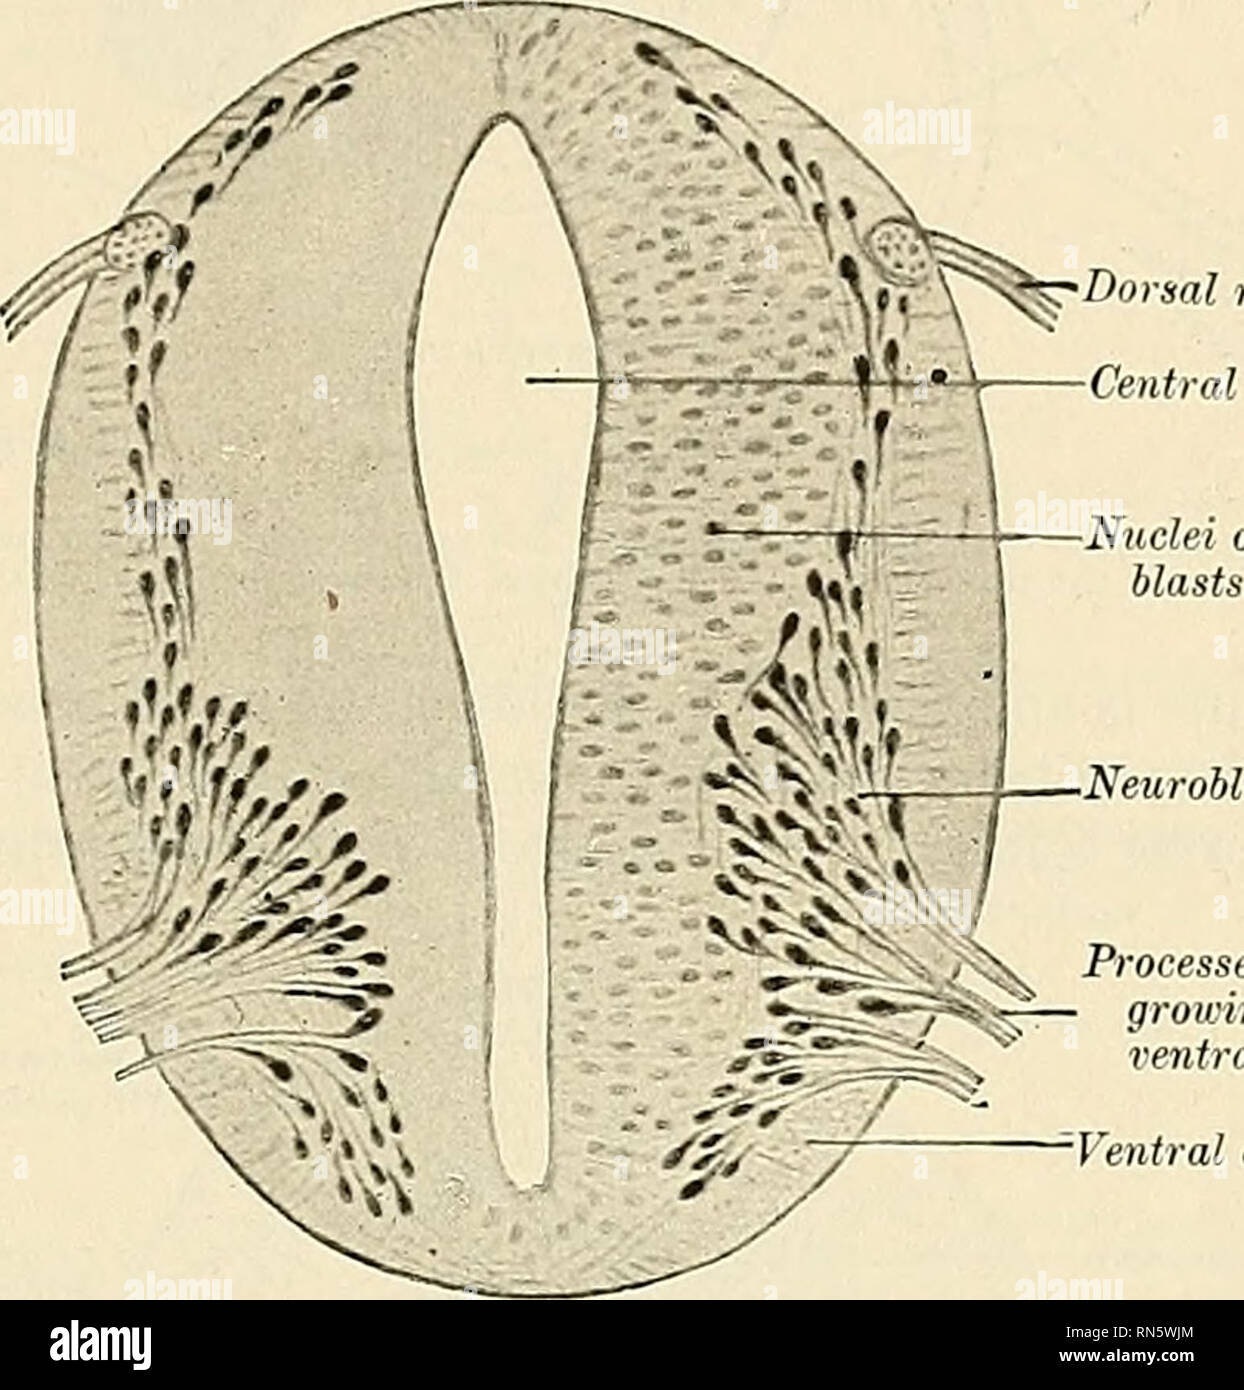 Anatomy Descriptive And Applied Anatomy The Spinal Cord 825 Filum Ifilum Terminale The Delicate Terminal Thread Called The Filum Contin Uous With The Tapered End Of The Conus Is About 24 The filum terminale internum is. https www alamy com anatomy descriptive and applied anatomy the spinal cord 825 filum ifilum terminale the delicate terminal thread called the filum contin uous with the tapered end of the conus is about 24 cm 10 inches in length as far as the level of the second sacral vertebral segment it is enclosed together with the cauda equina in the tapering sheath of the dura within the dural sac it is called the filum internum in contradistinction to the filum externum which is an attenuated process of connective and glia tissue closely invested by a prolonga tion of the dura which finally attaches image236772444 html